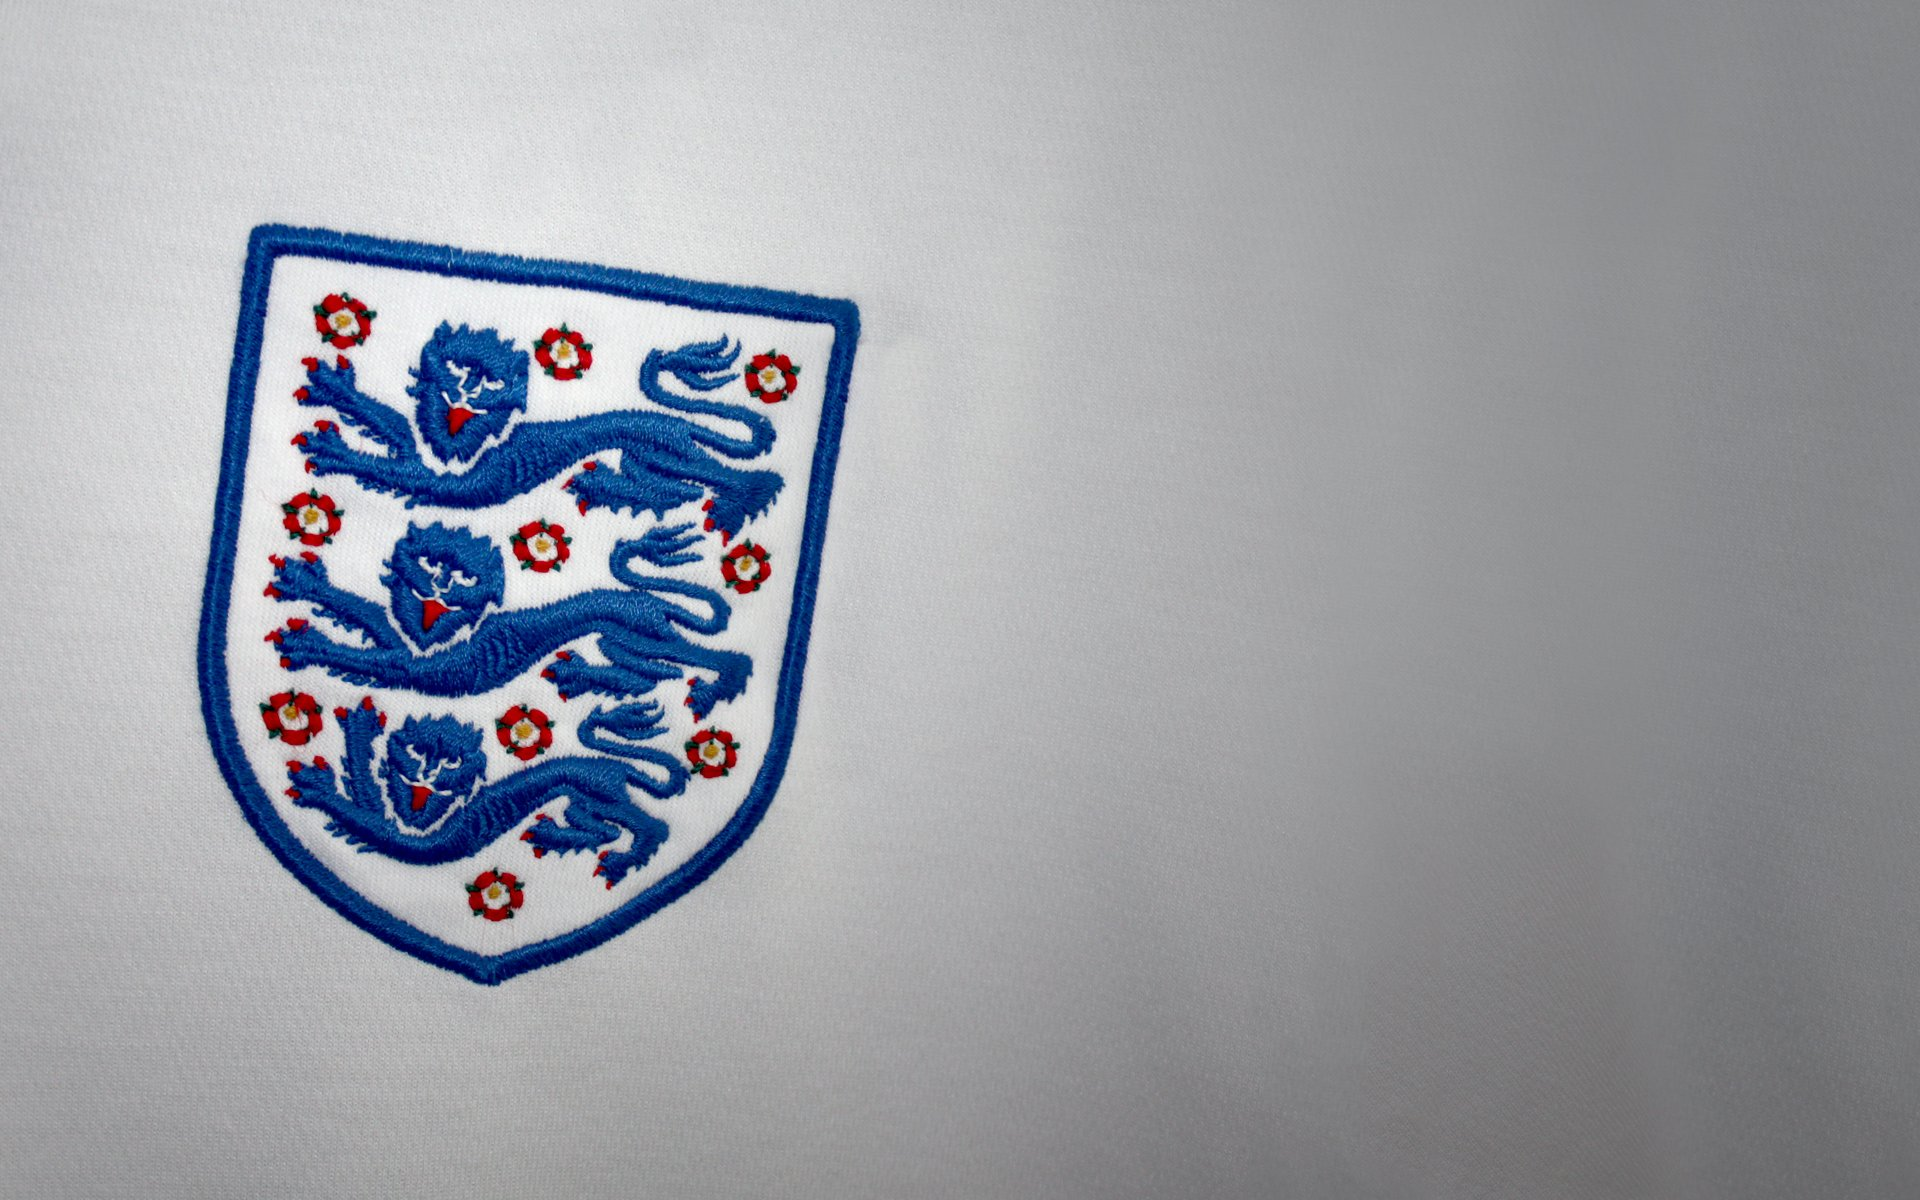 England Football Team Wallpapers Hd Wallpapers 1920x1200